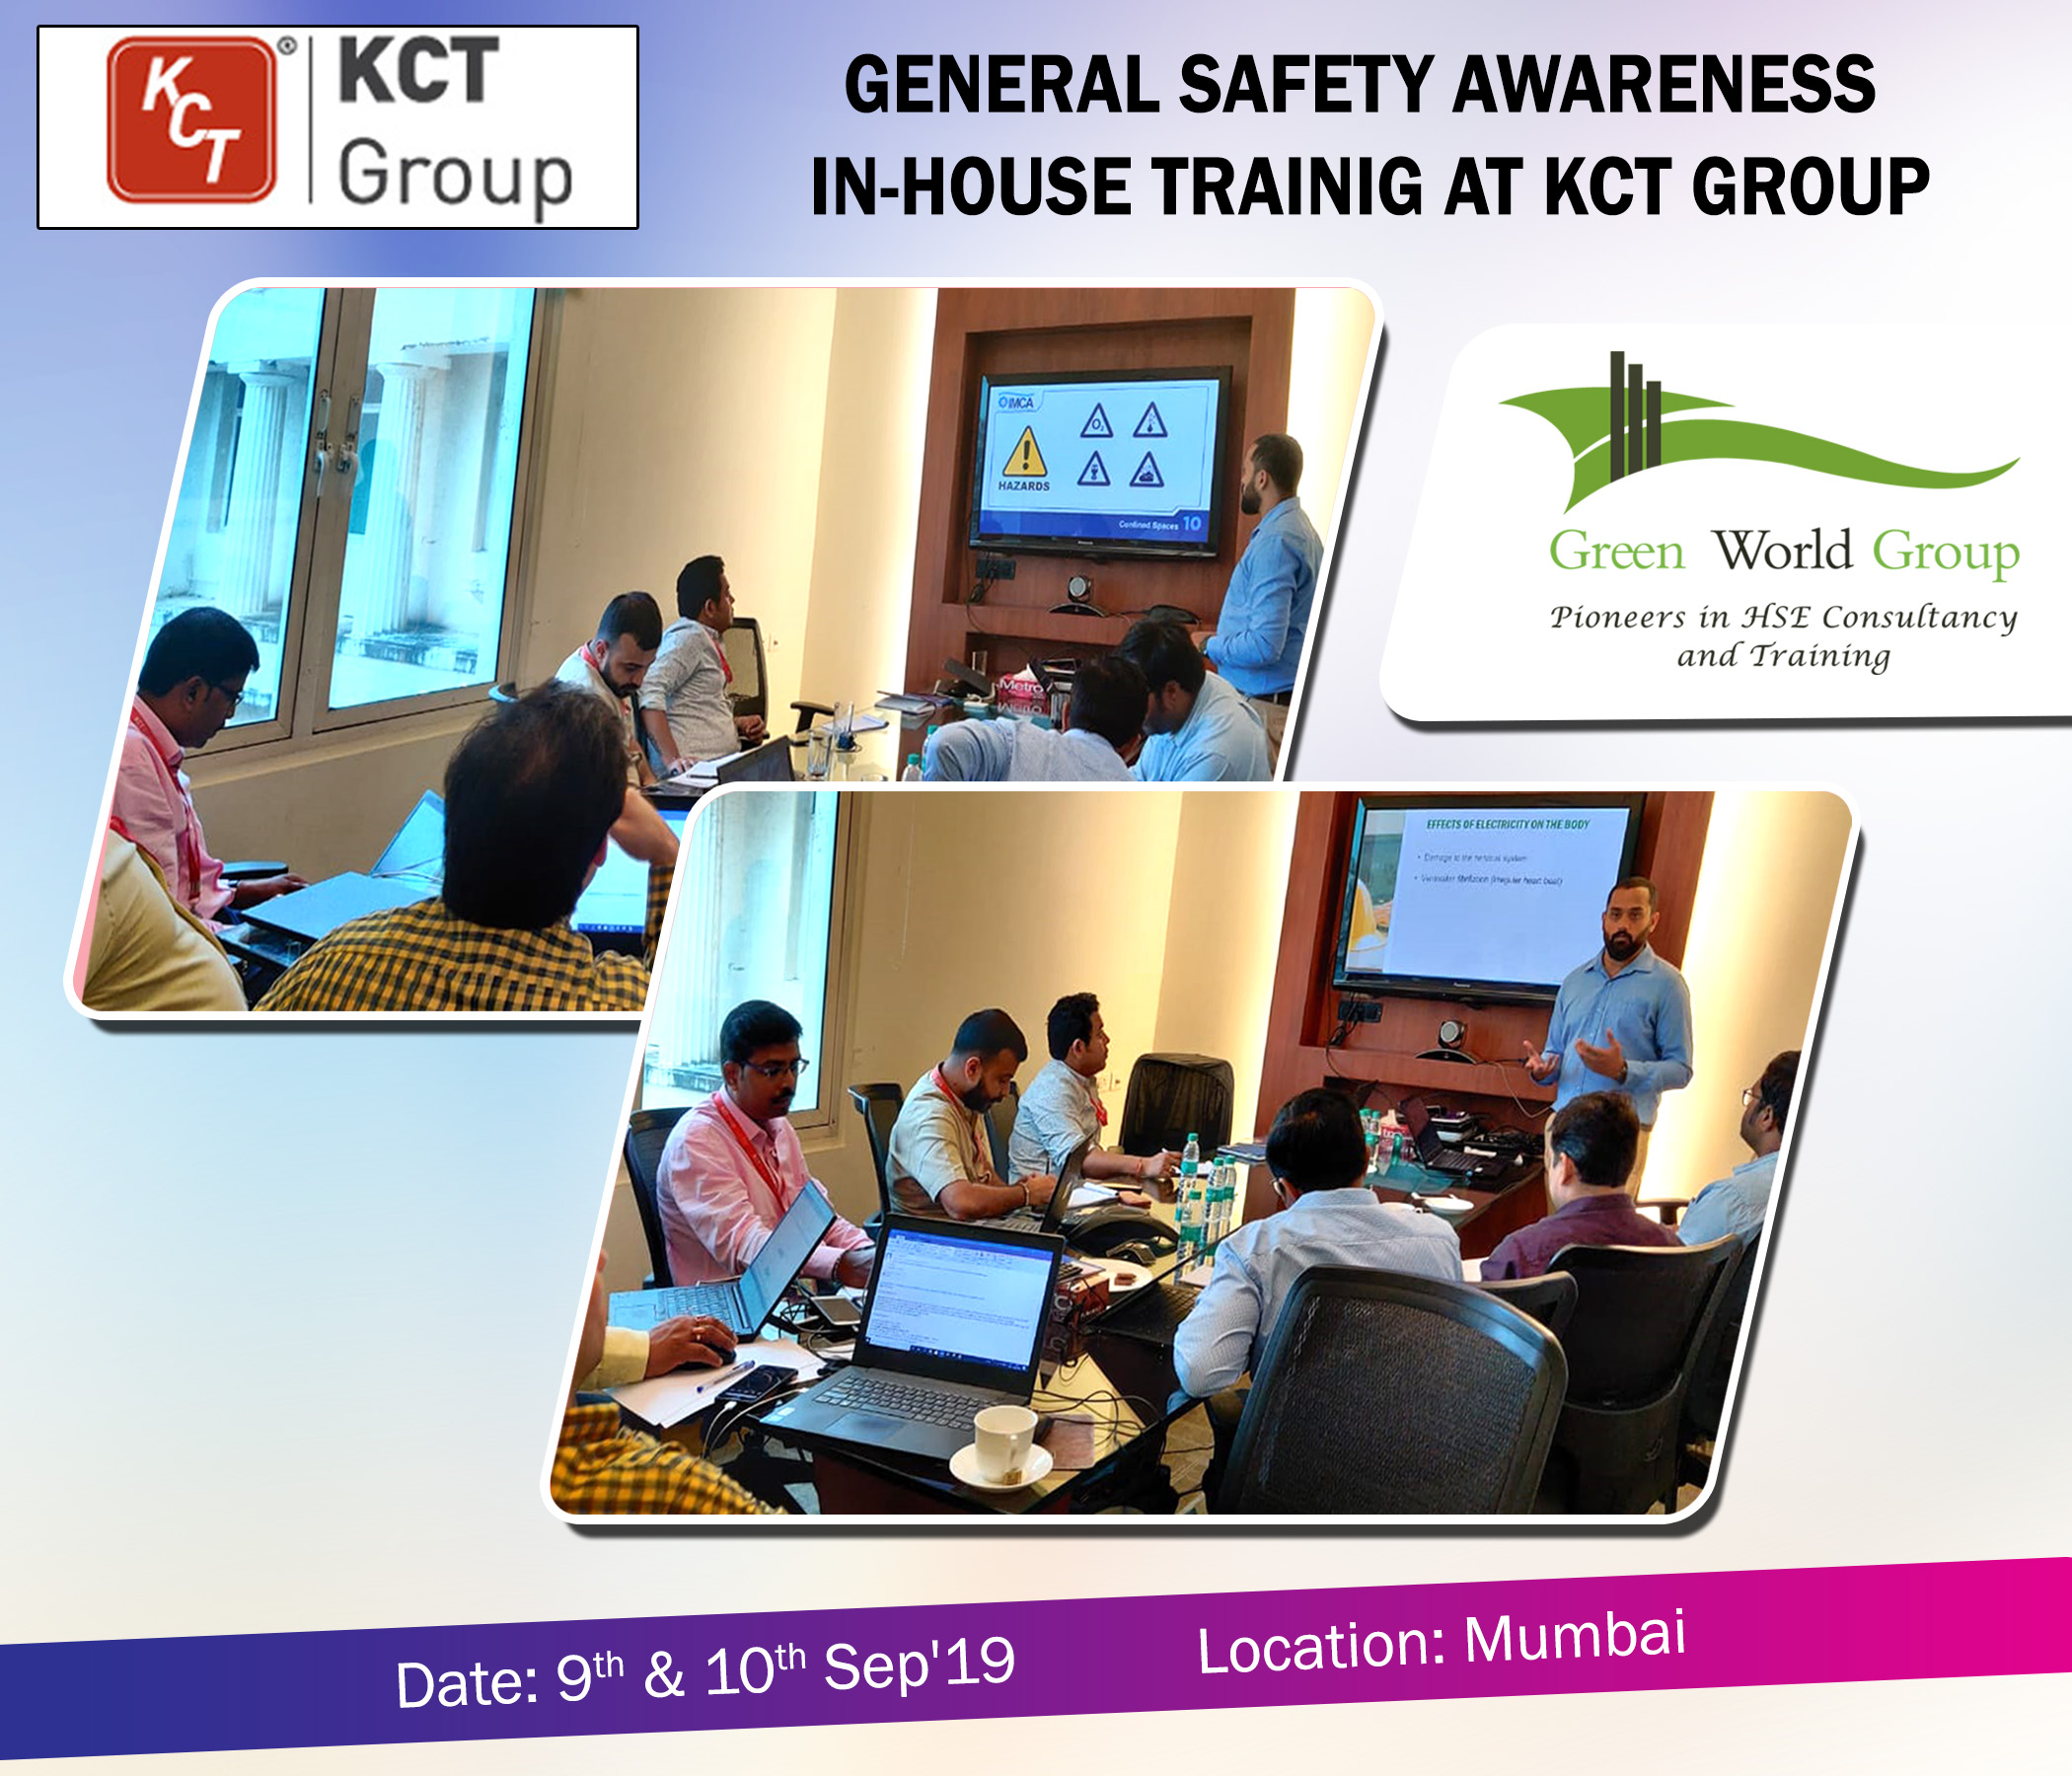 KCT Group General safety awareness 2 days